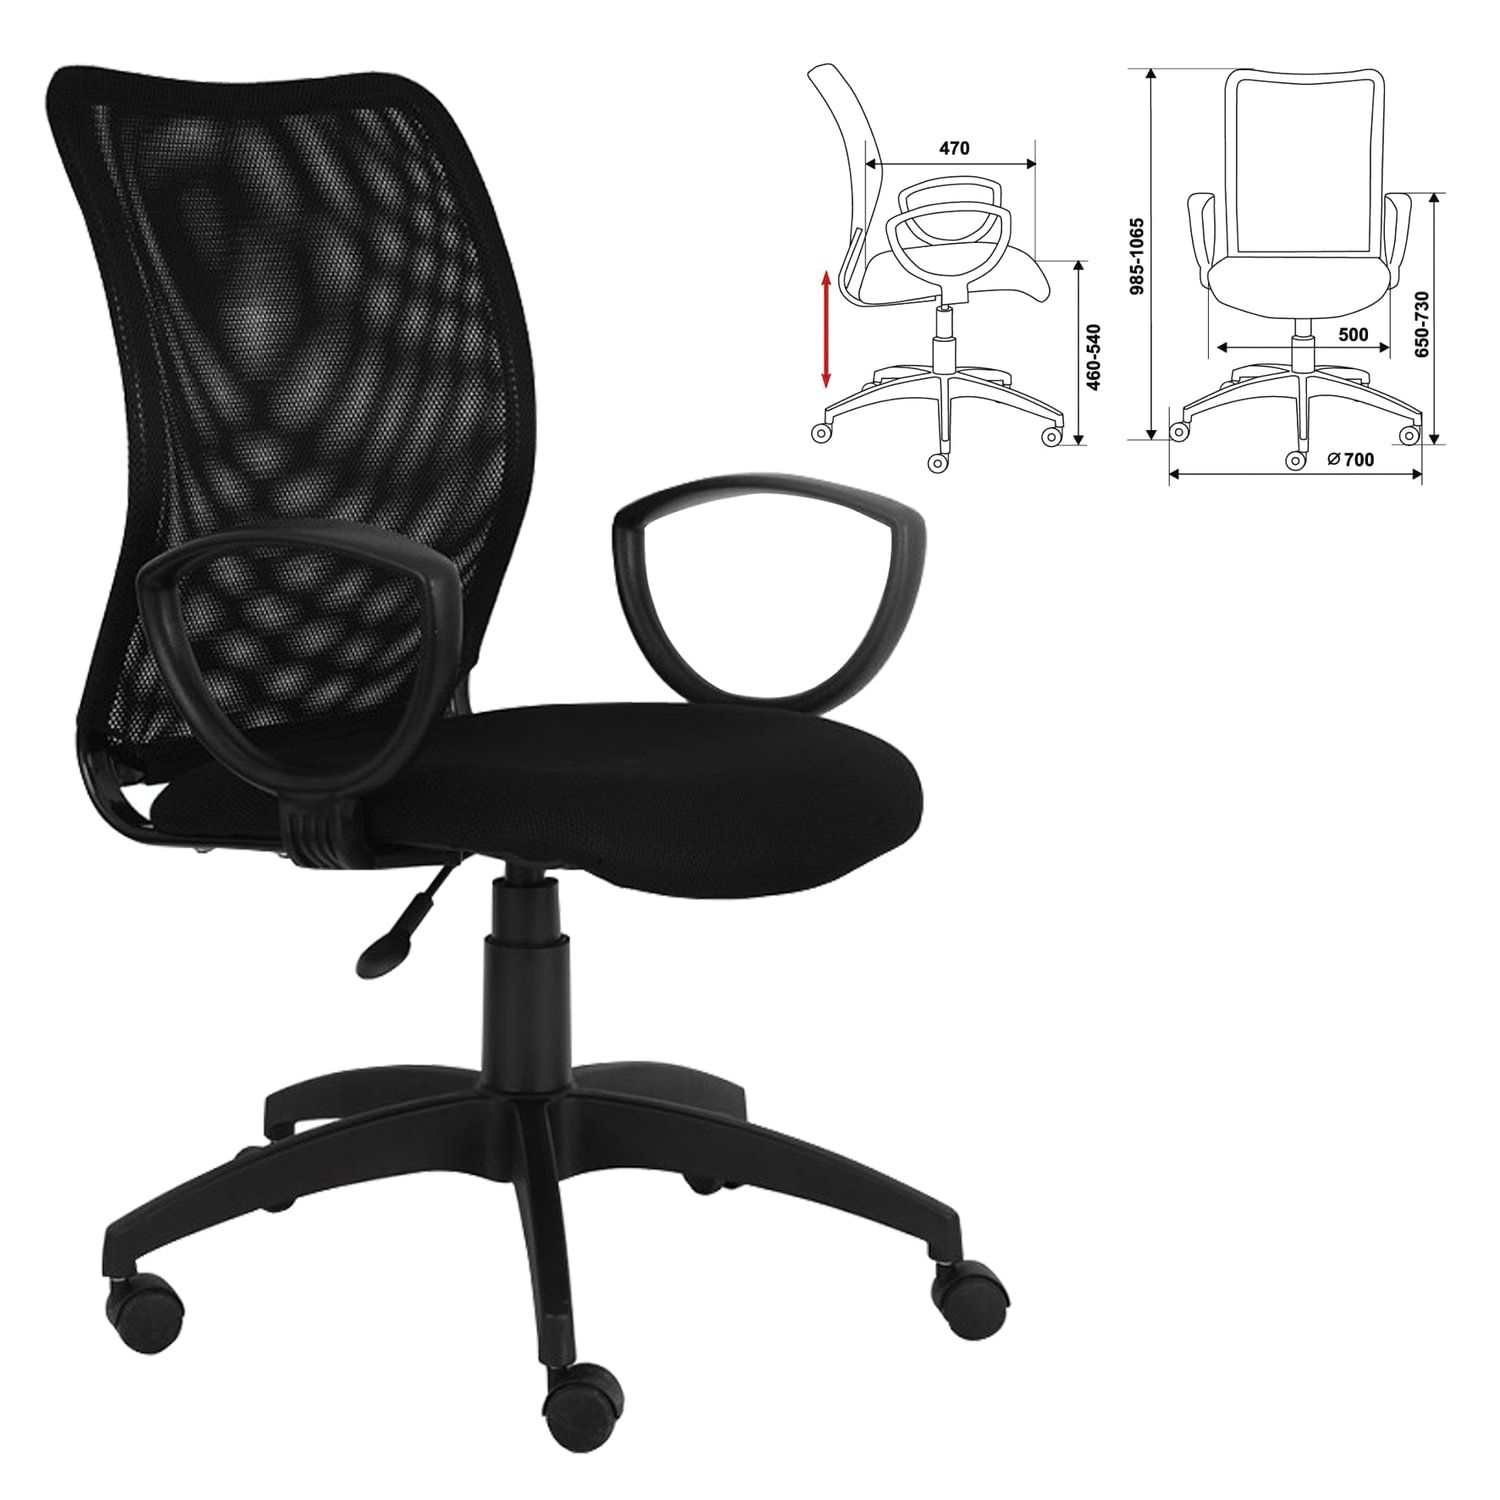 Chair CH-599AXSN, with armrests, black